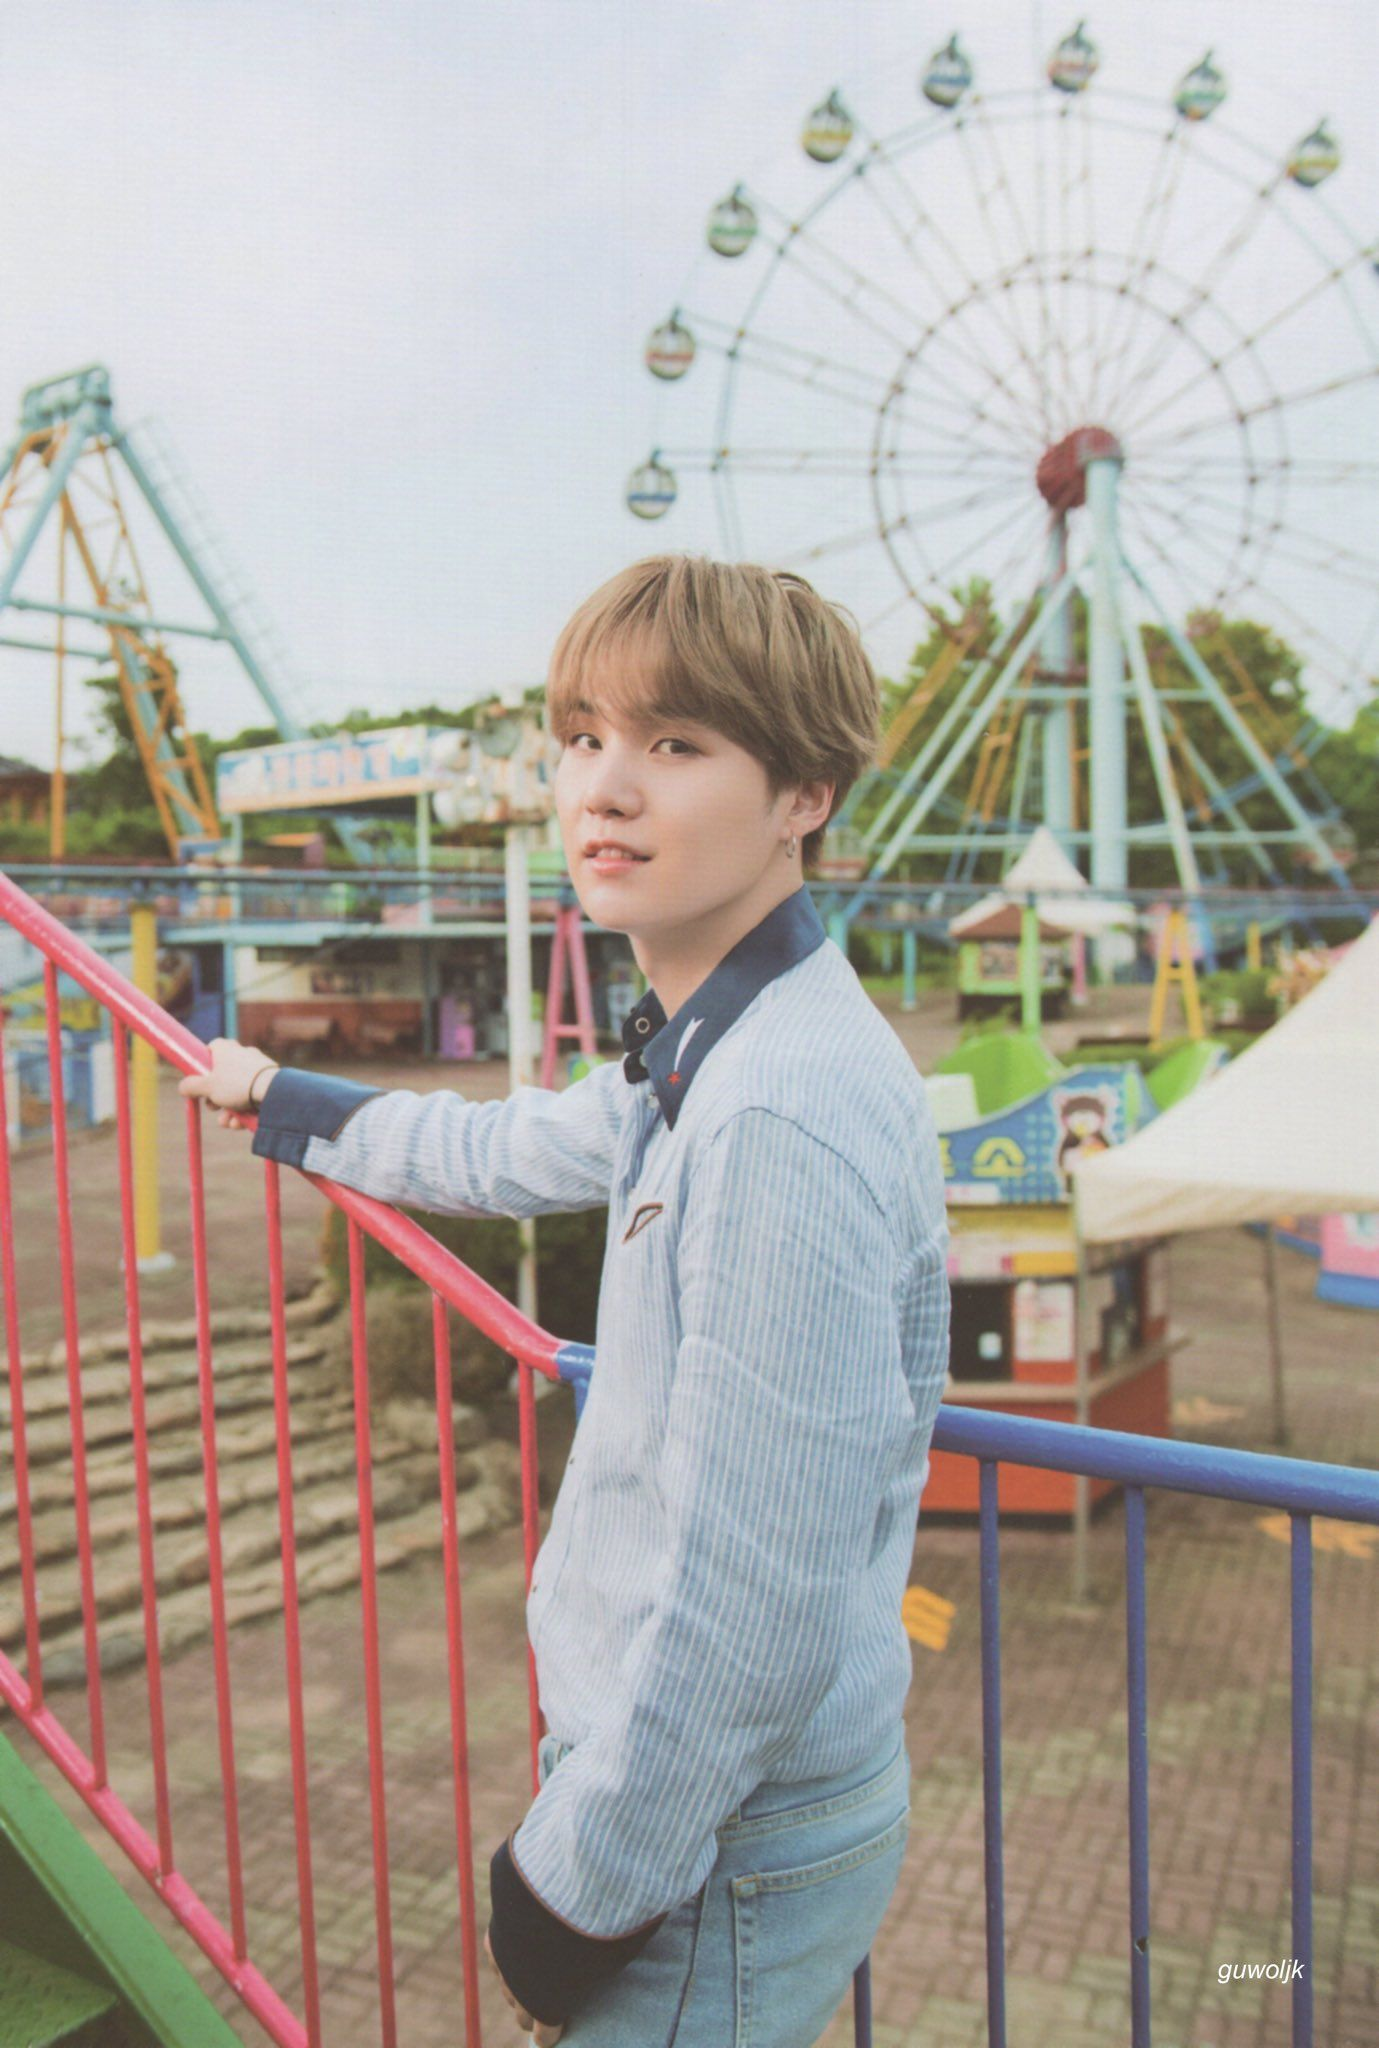 구월 (@guwoljk) #btssummerpackage2019 9: GJK on Twitter: (scan) summer package 2019 #윤기 #슈가…